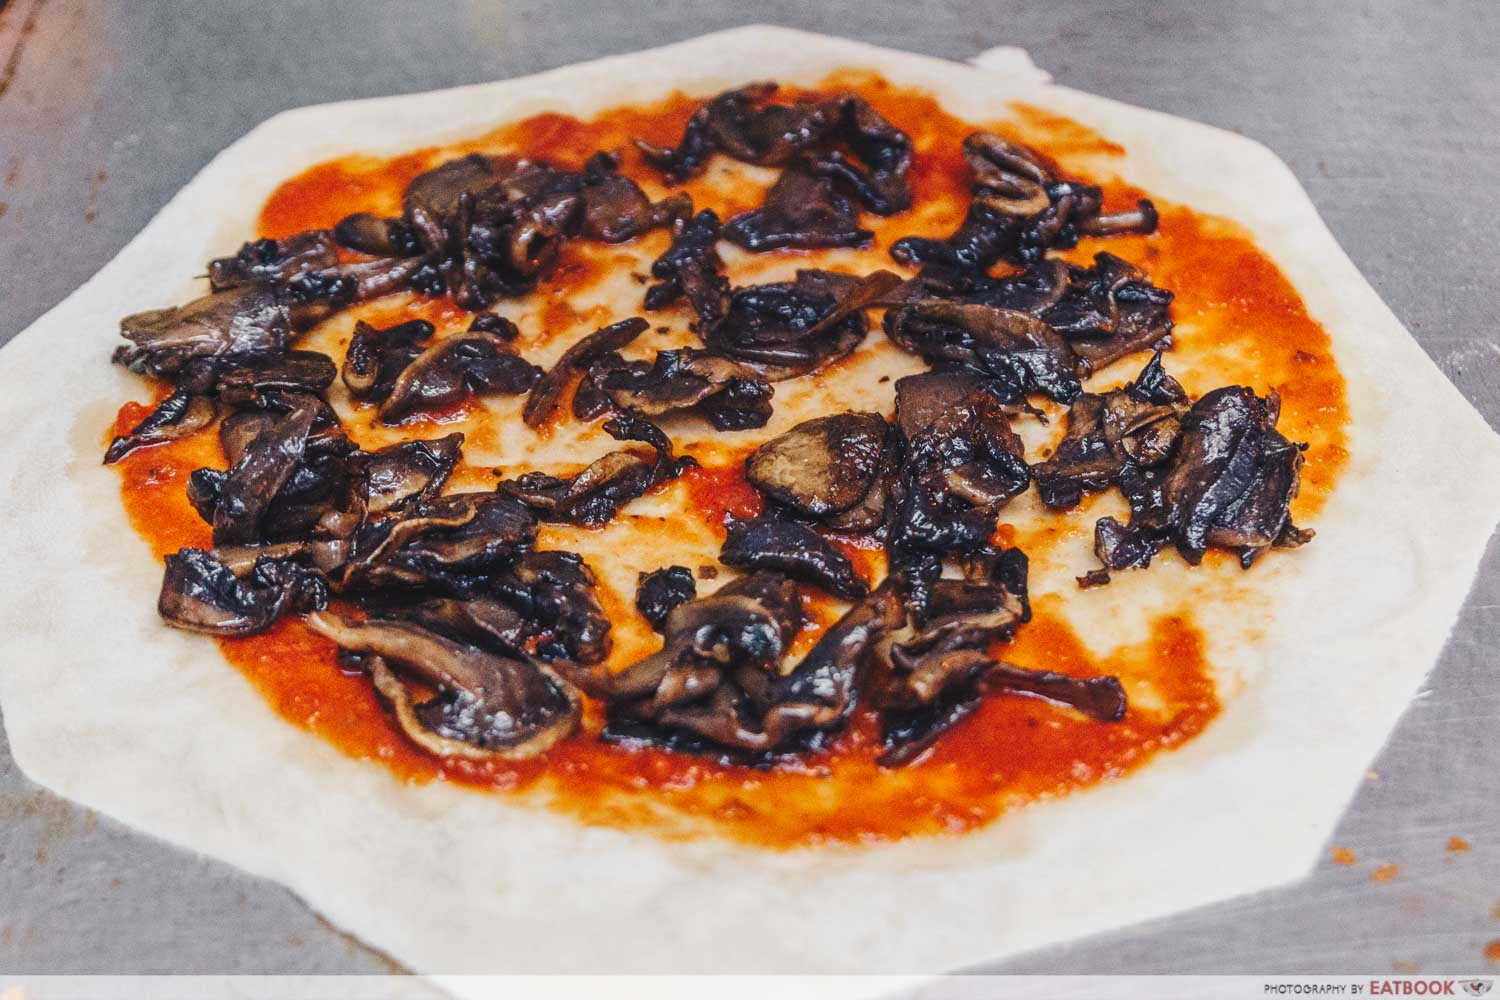 ButterNut - pizza make with mushrooms